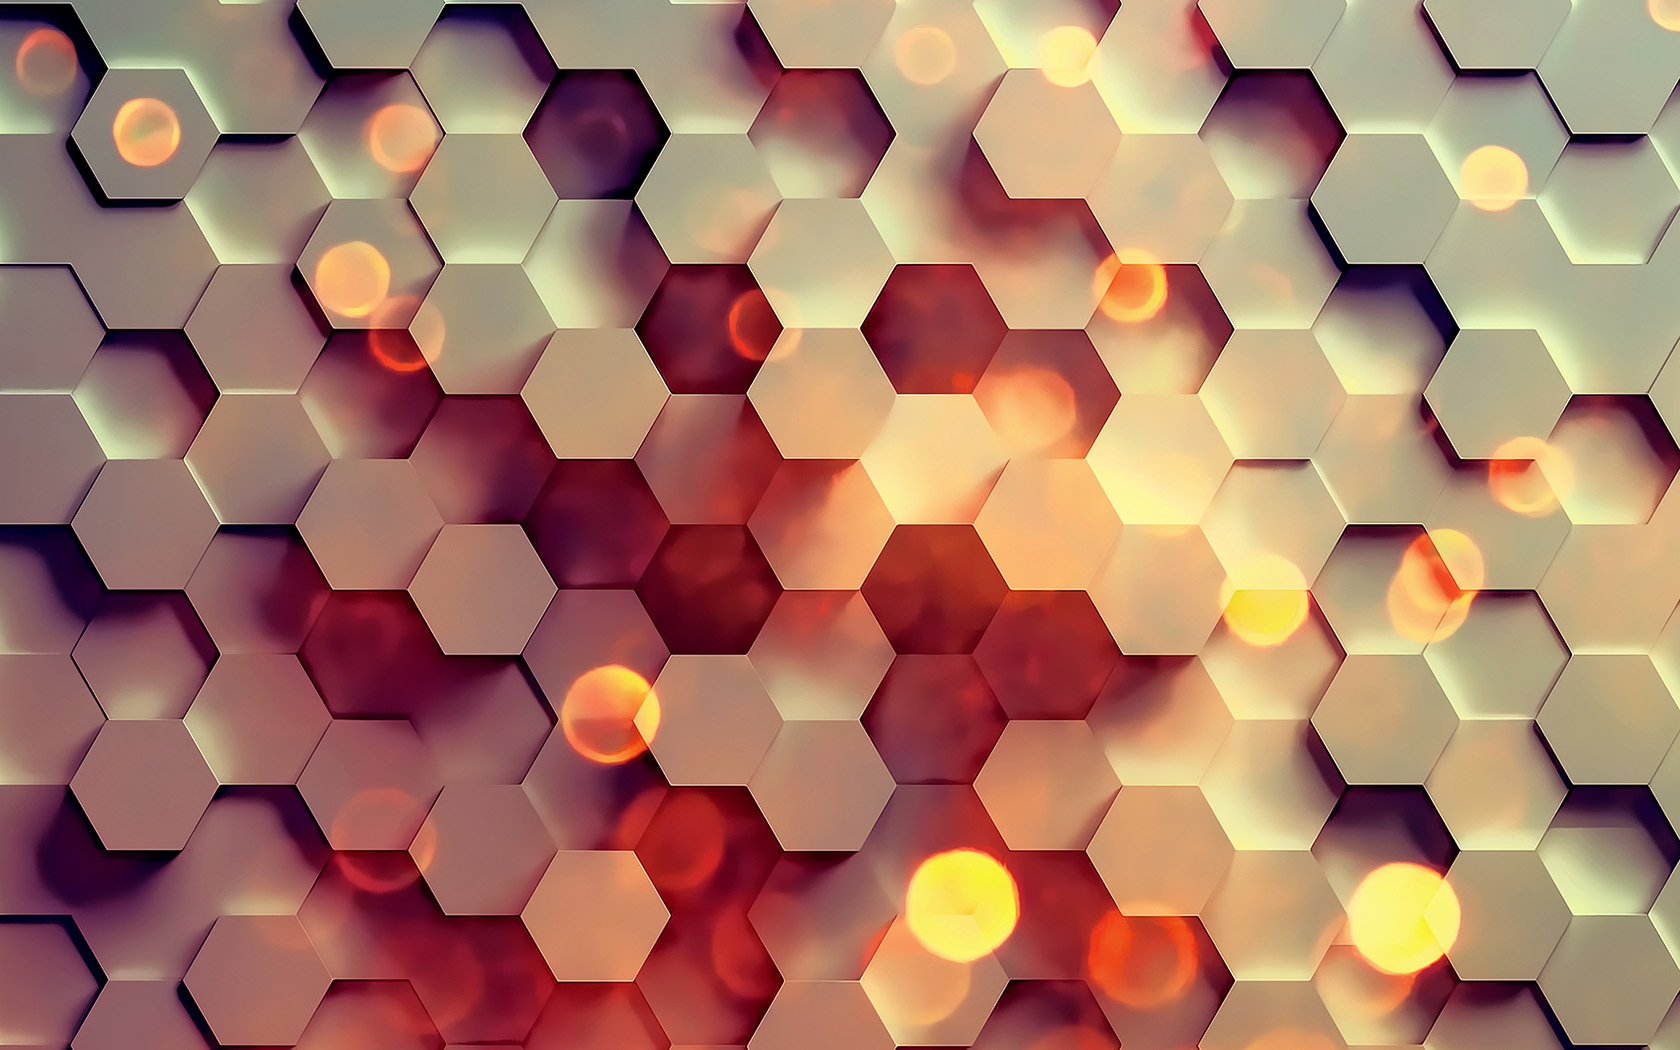 Free Fall Disney Wallpaper Vy40 Honey Hexagon Digital Abstract Pattern Background